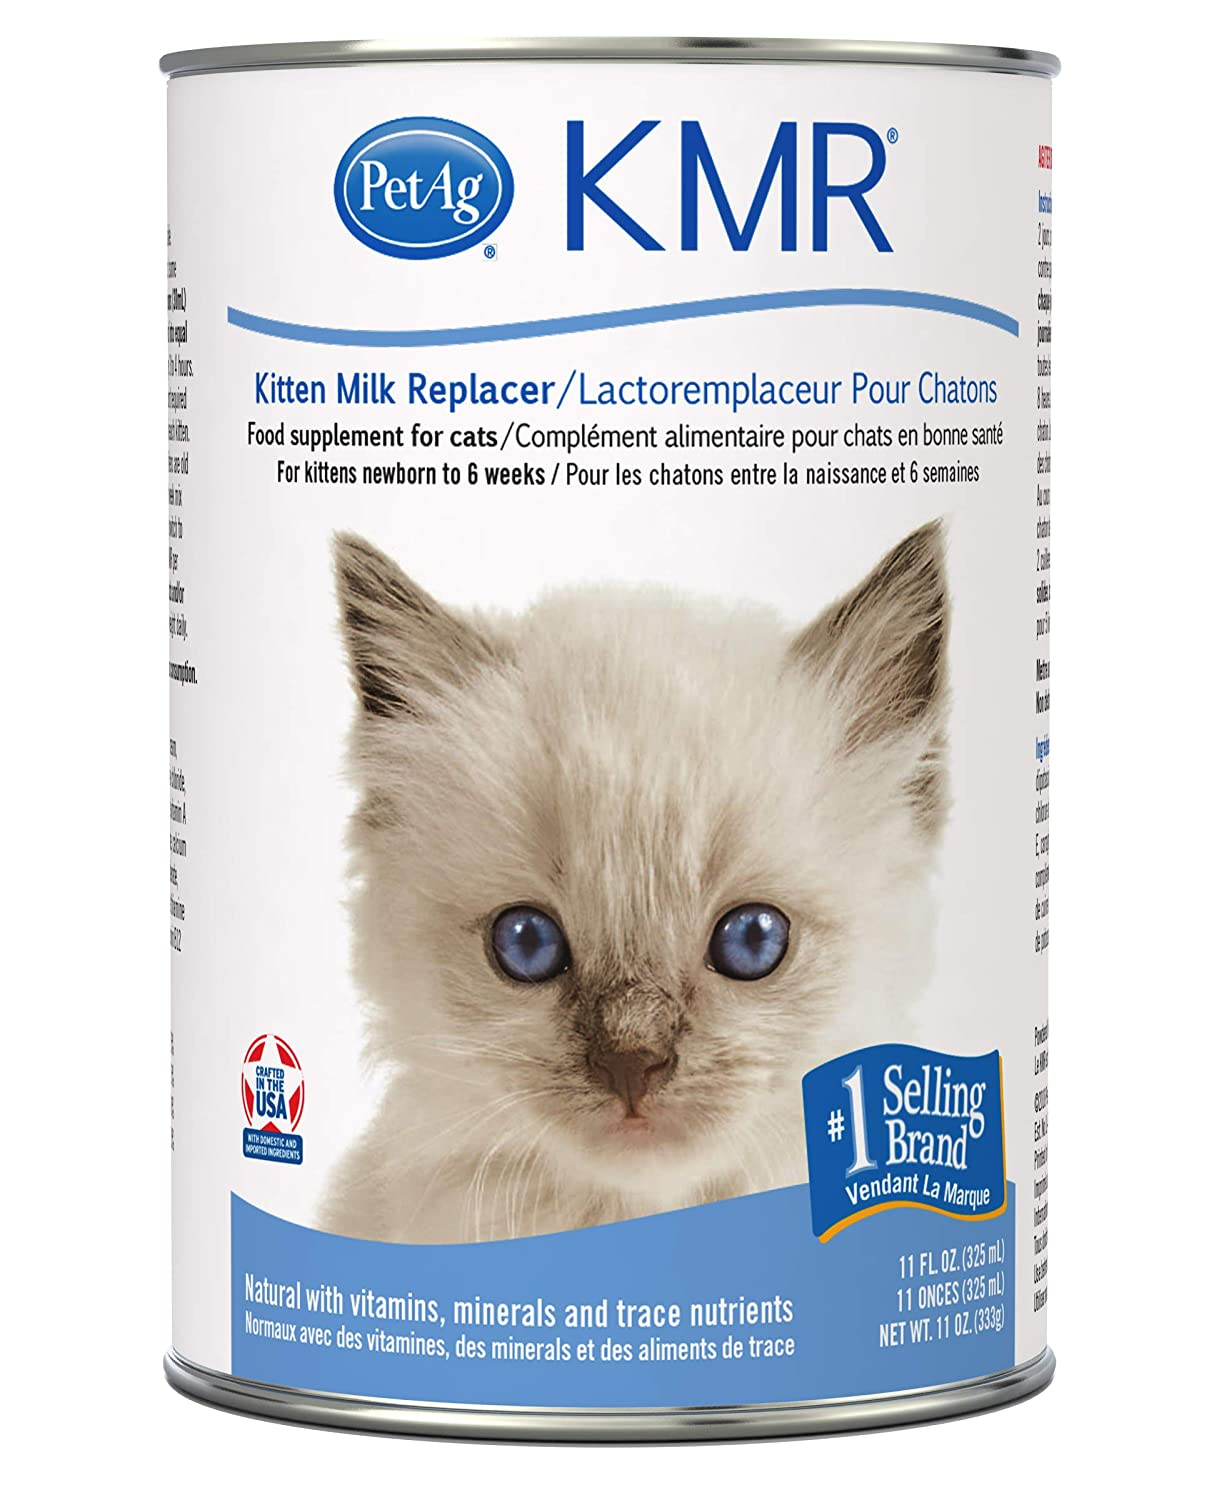 Pet Ag Kmr Milk Replacer For Kittens Liquid 11oz Amazon In Pet Supplies